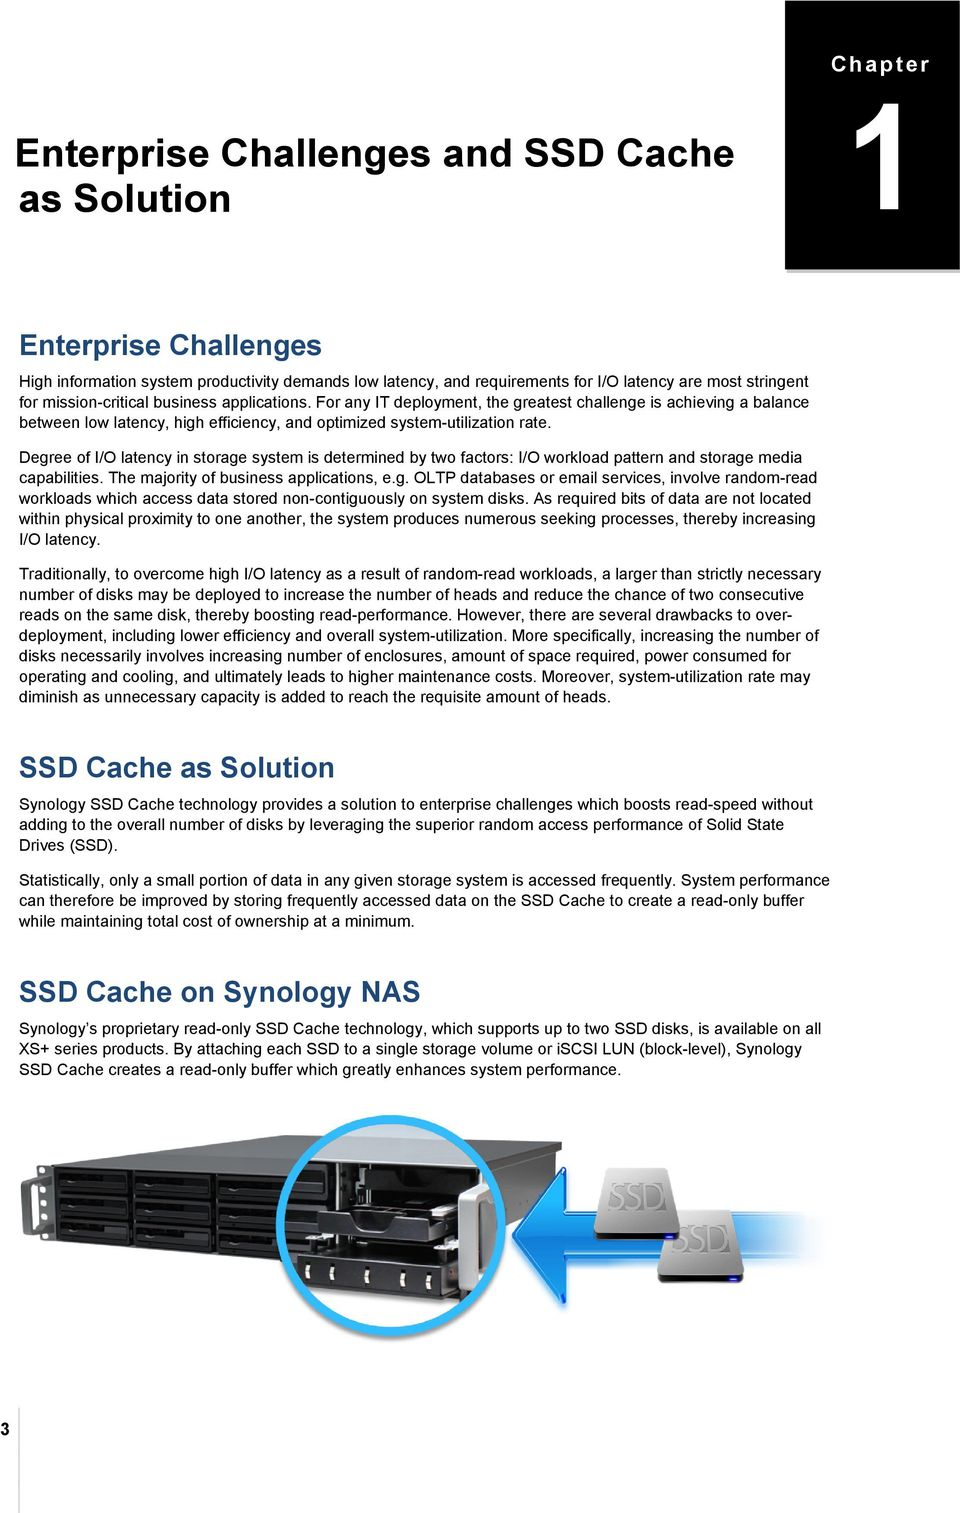 Using Synology SSD Technology to Enhance System Performance